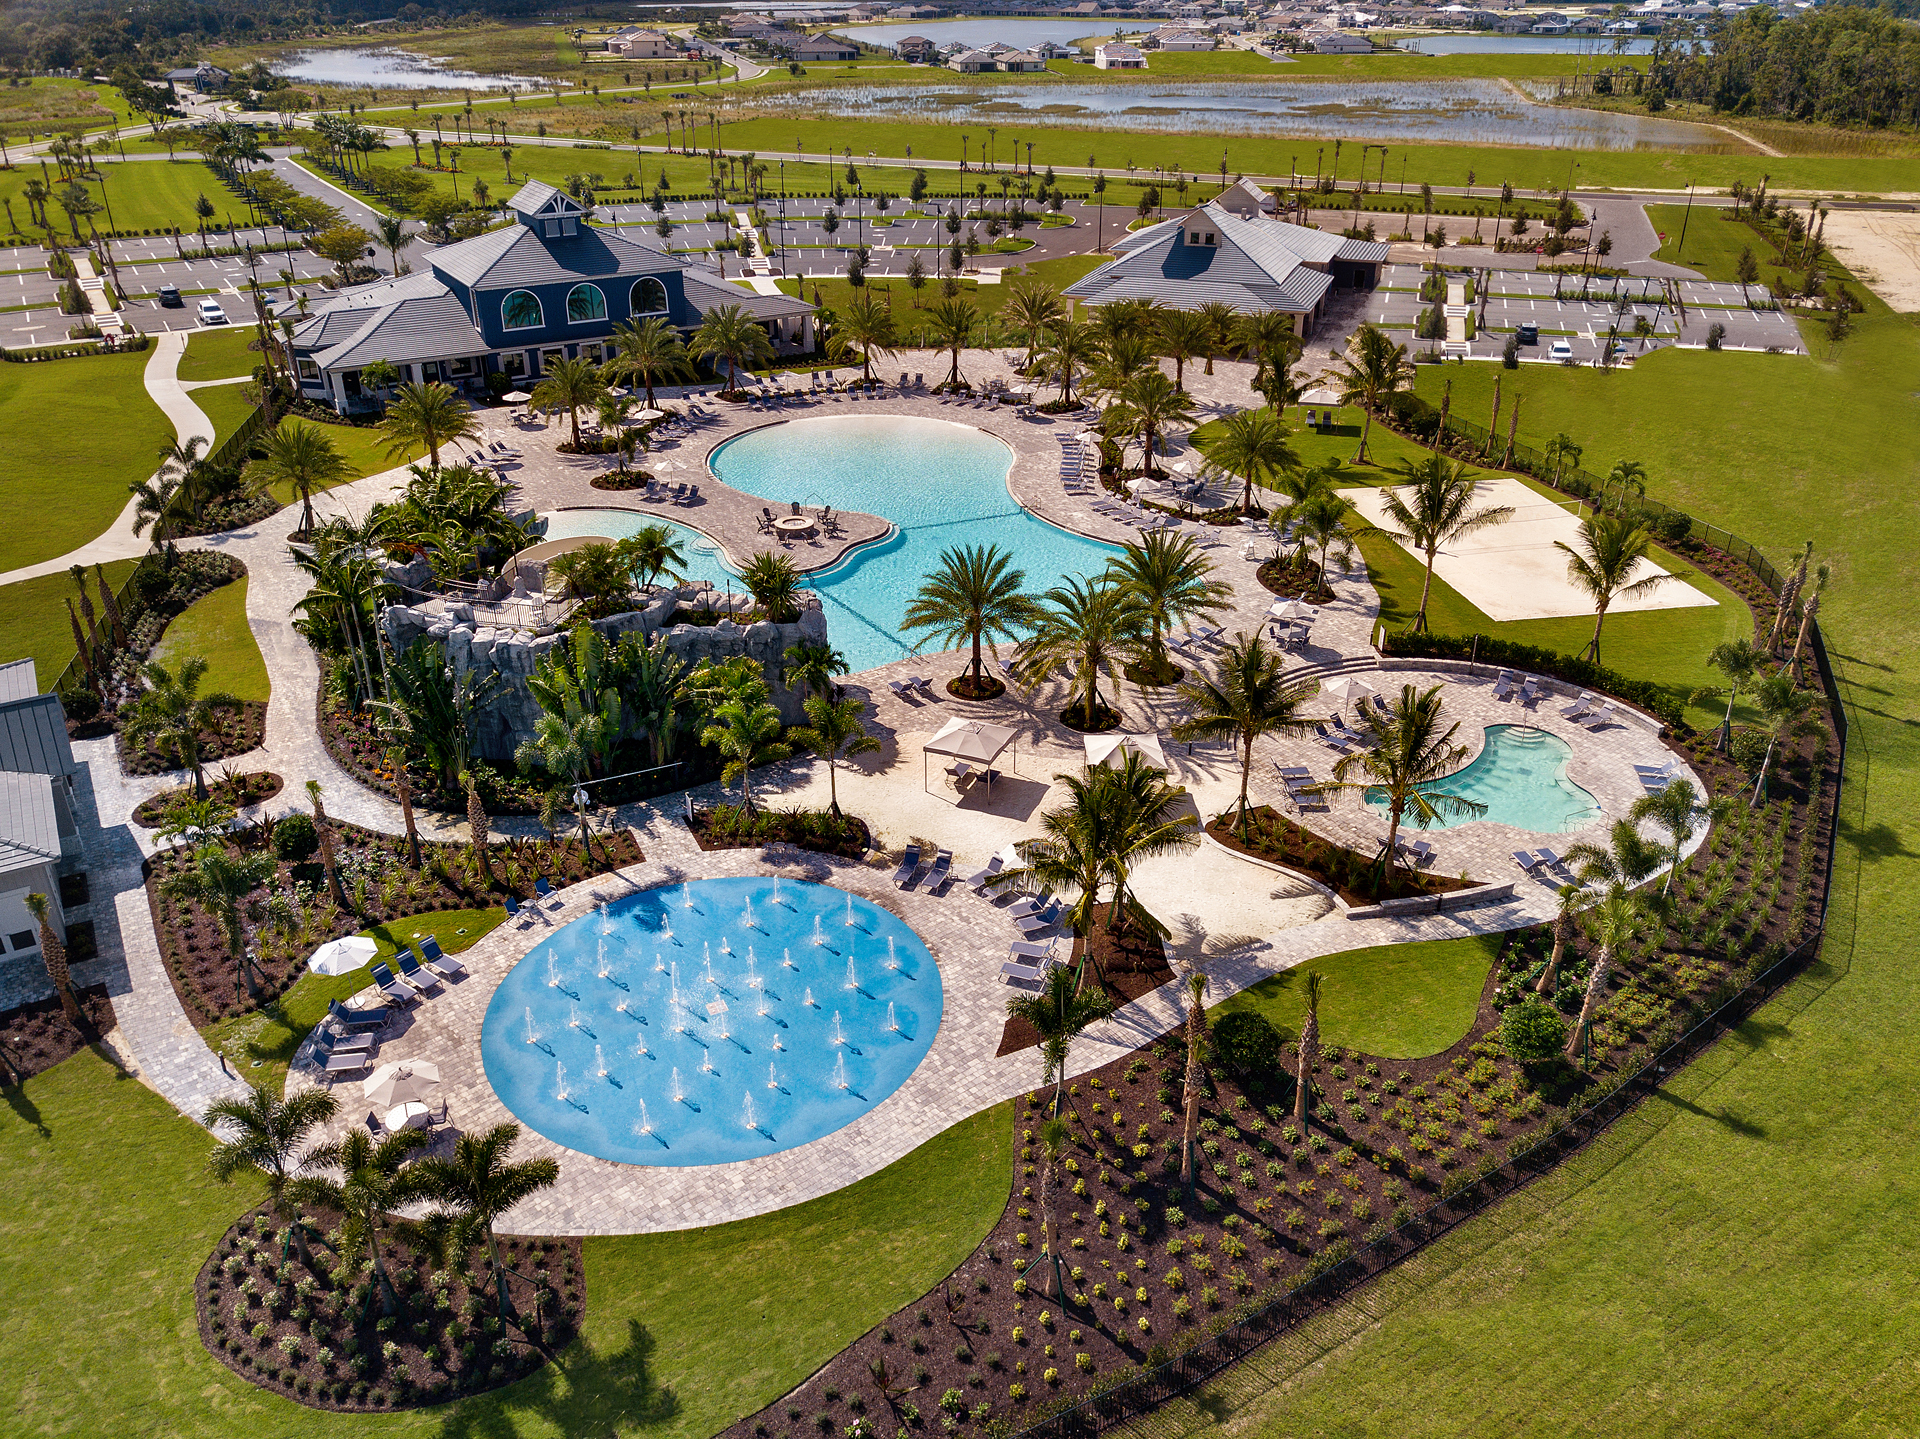 The Place Amenity Aerial